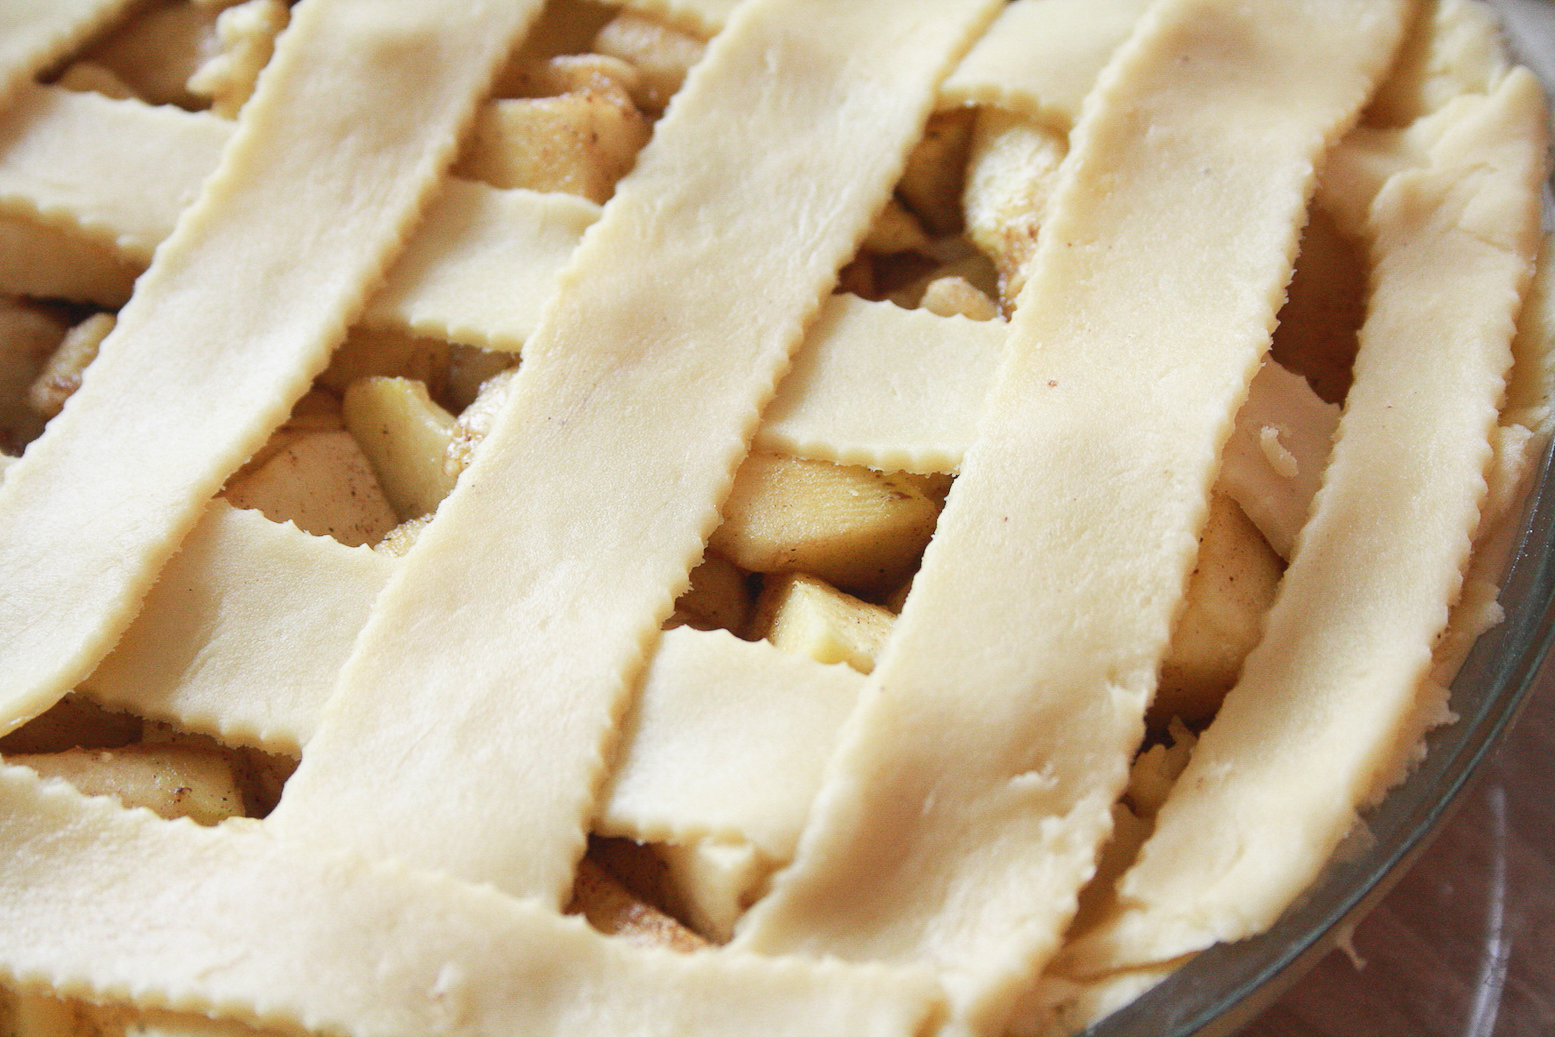 Classic apple pie made with a from-scratch, all-butter flaky crust!